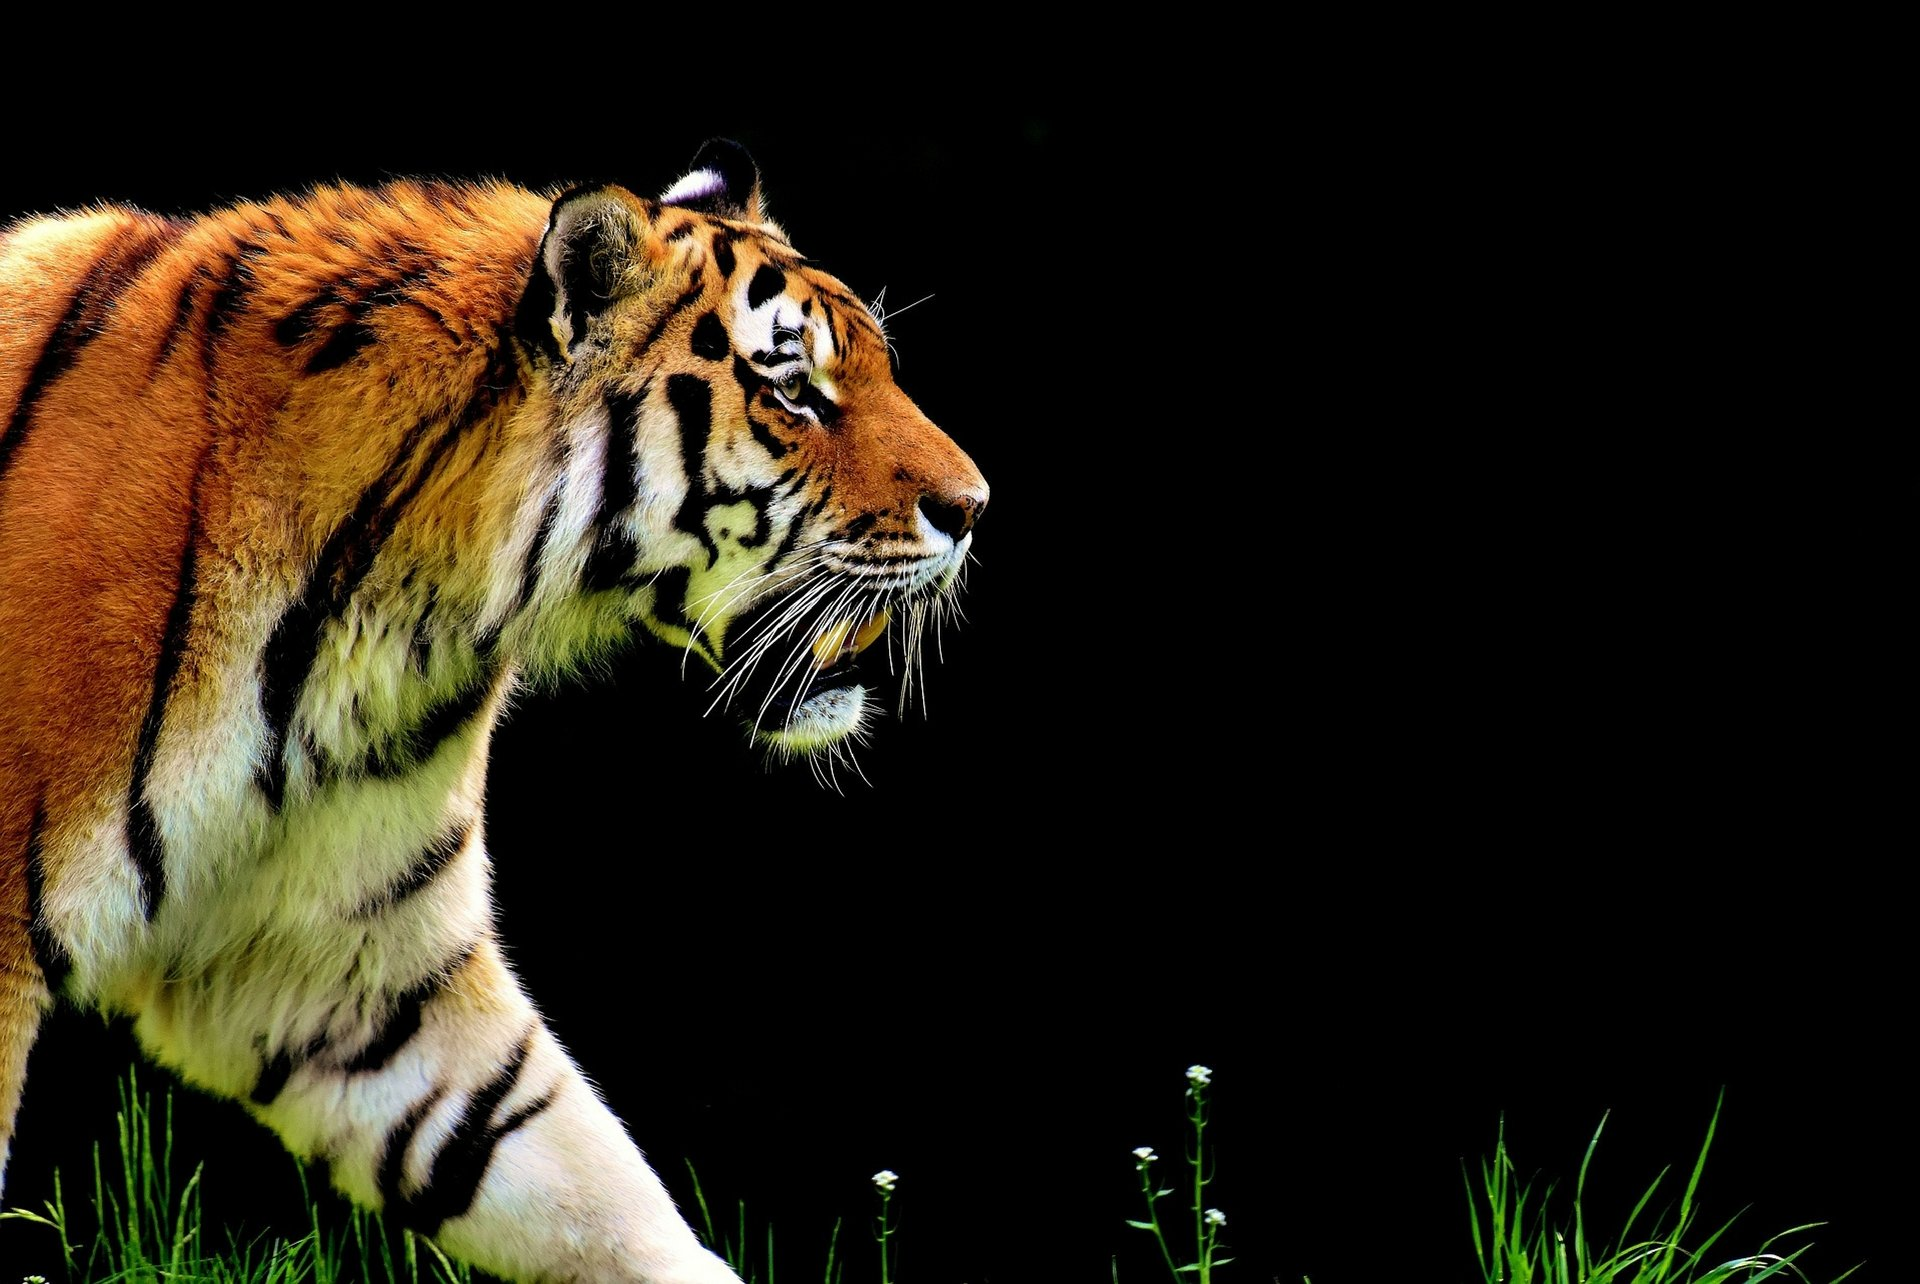 SCMP – Chasing tigers in the Sundarbans